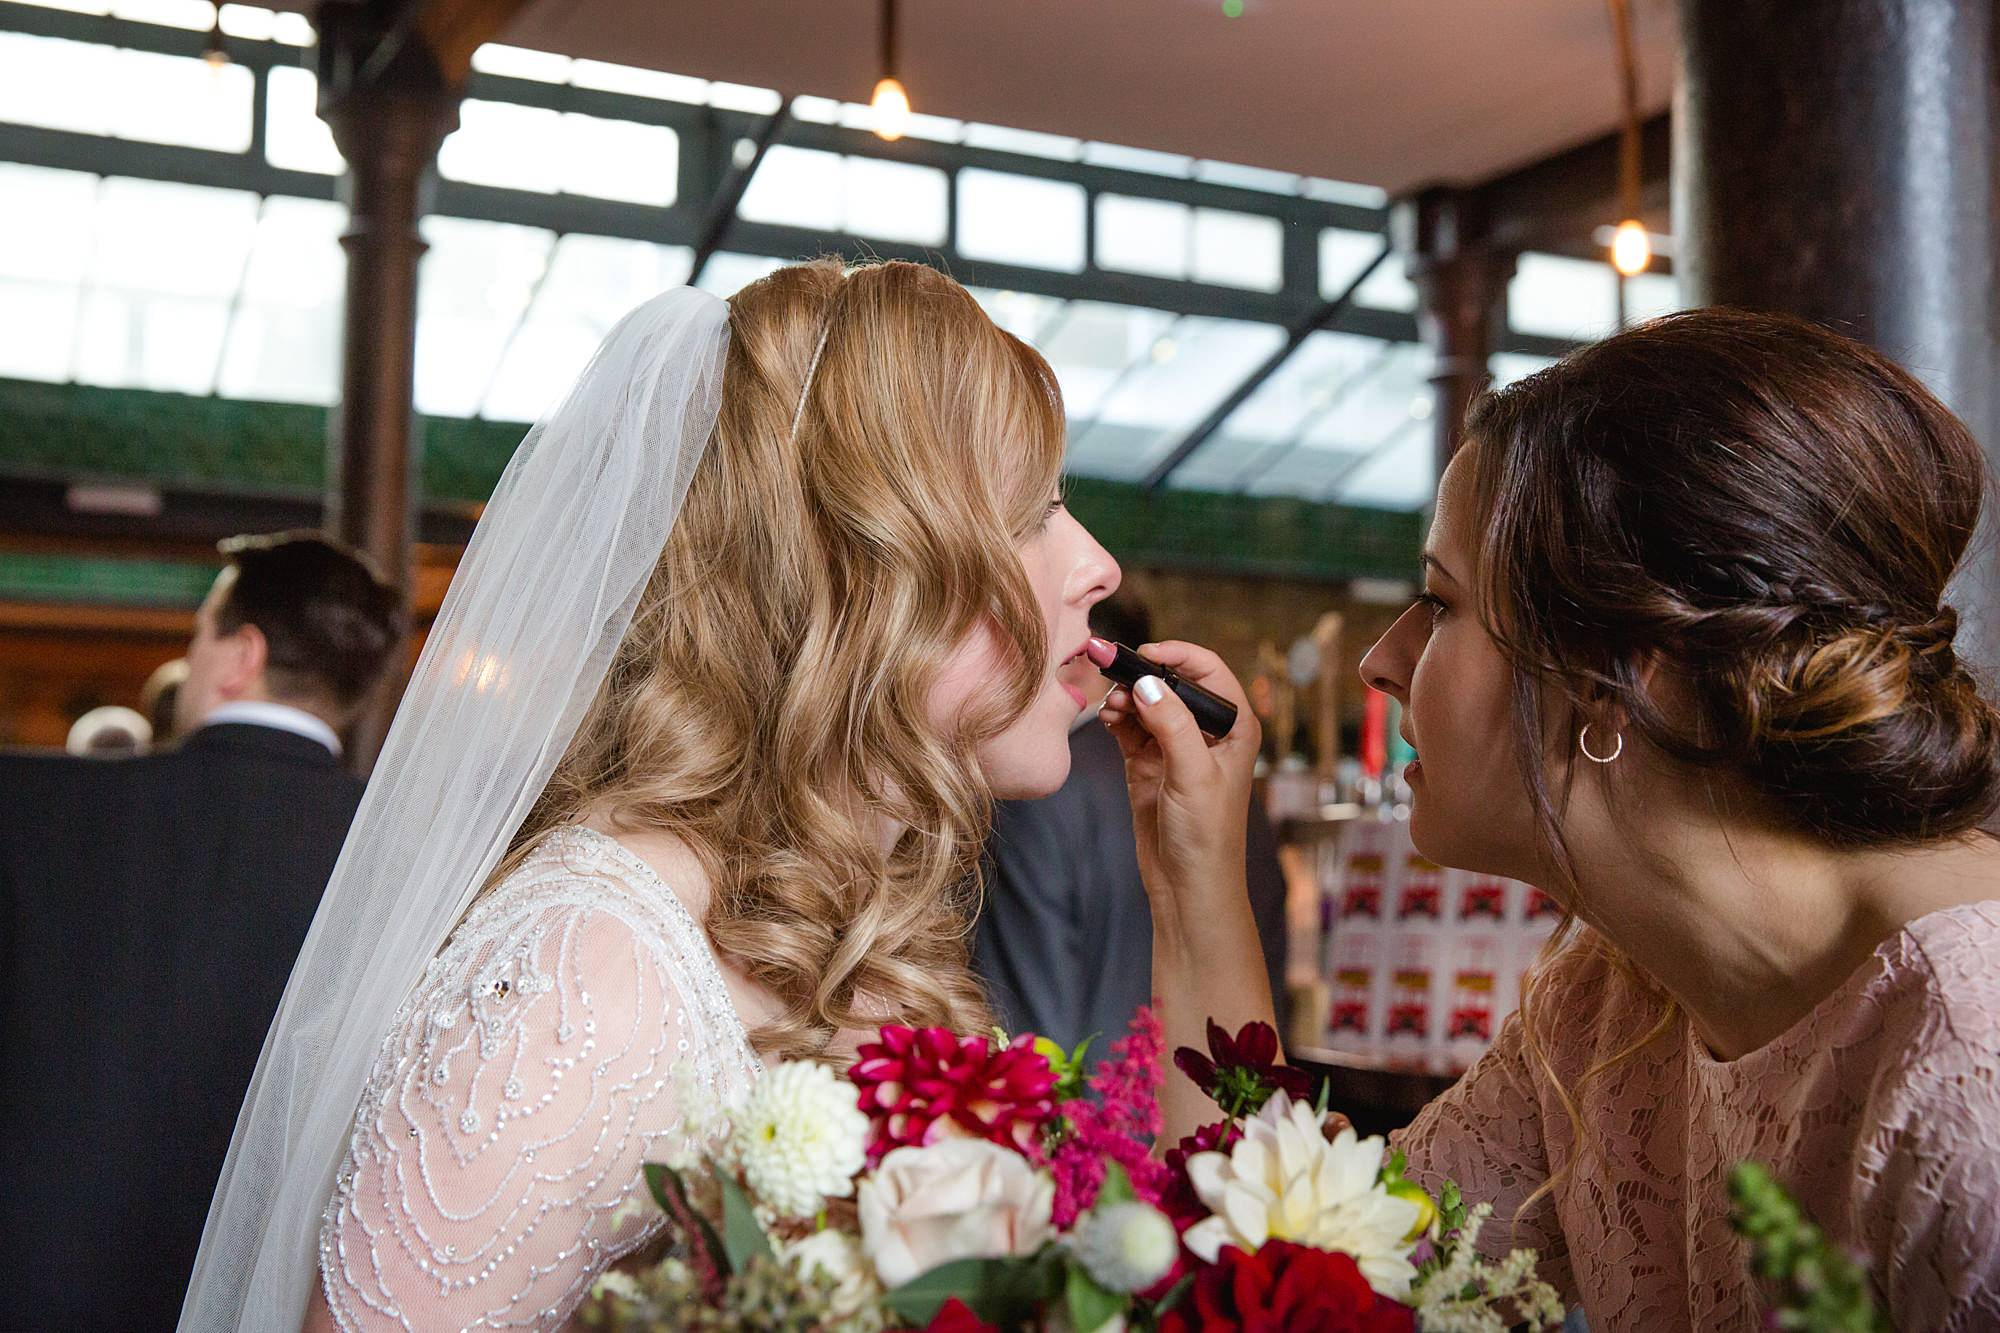 Harrild and sons wedding bridesmaid applies lipstick on bride